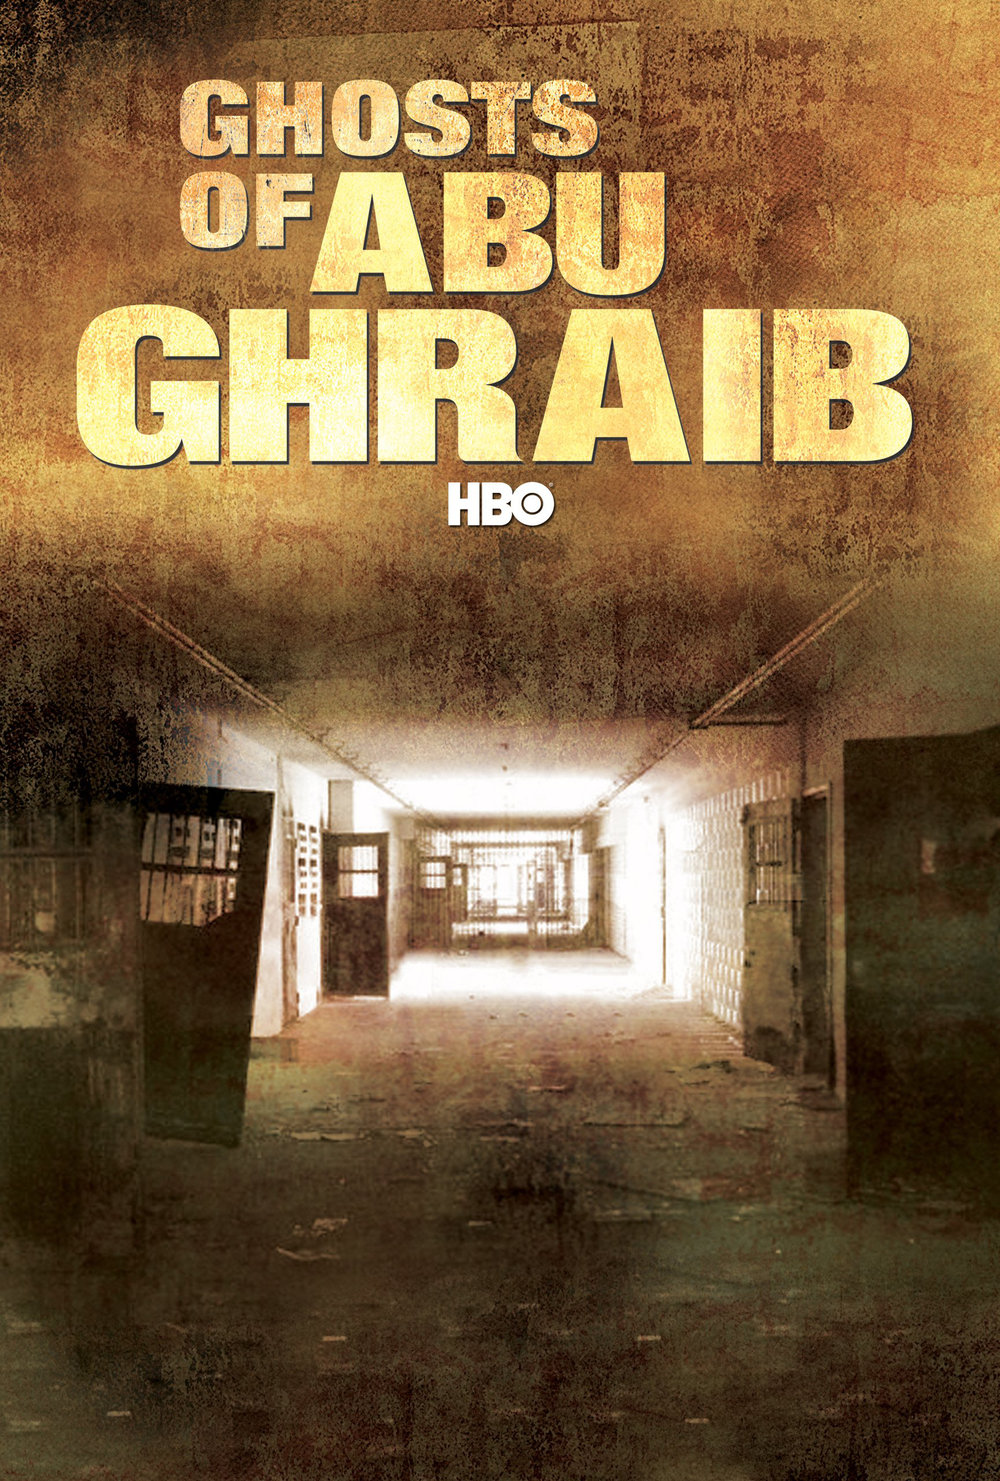 GHOSTS OF ABU GHRAIB  (2007)  EDITOR  PRIMTIME EMMY NOMINATION  SUNDANCE FILM FESTIVAL  HBO